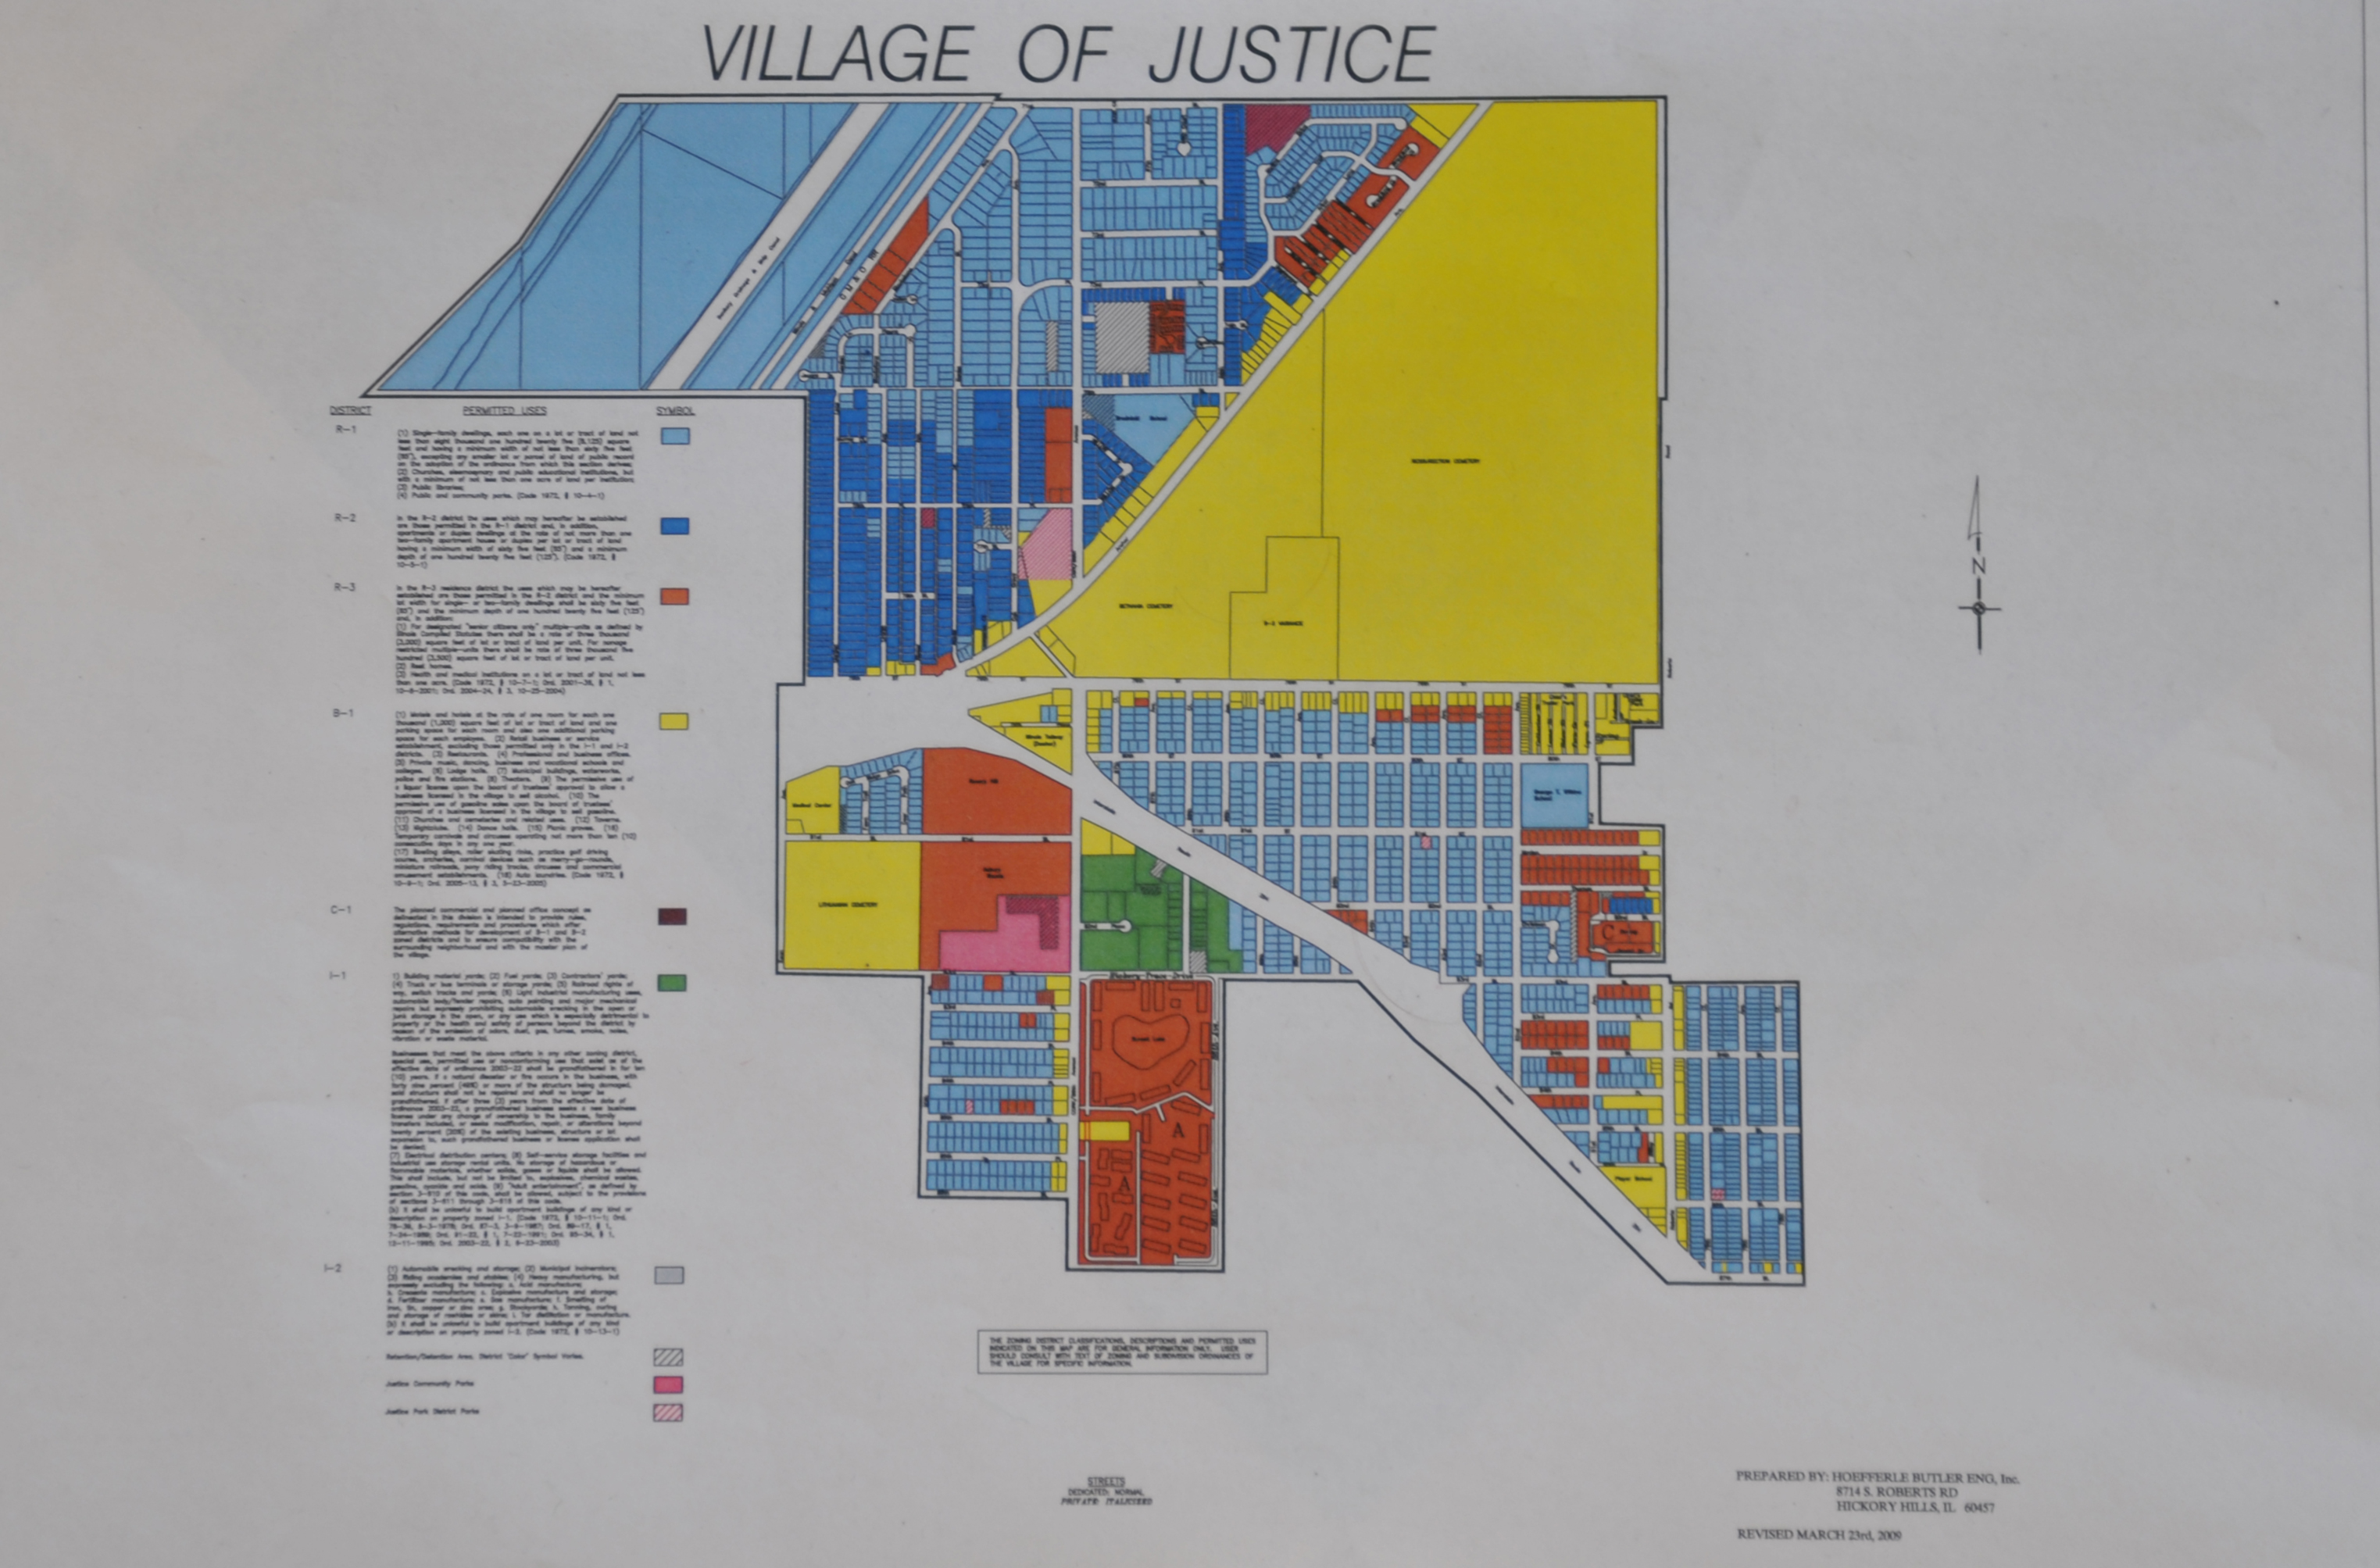 Zoning Maps For Bedford Park Justice And Hodgkins Illinois - Map of the us hodgkins ilinois